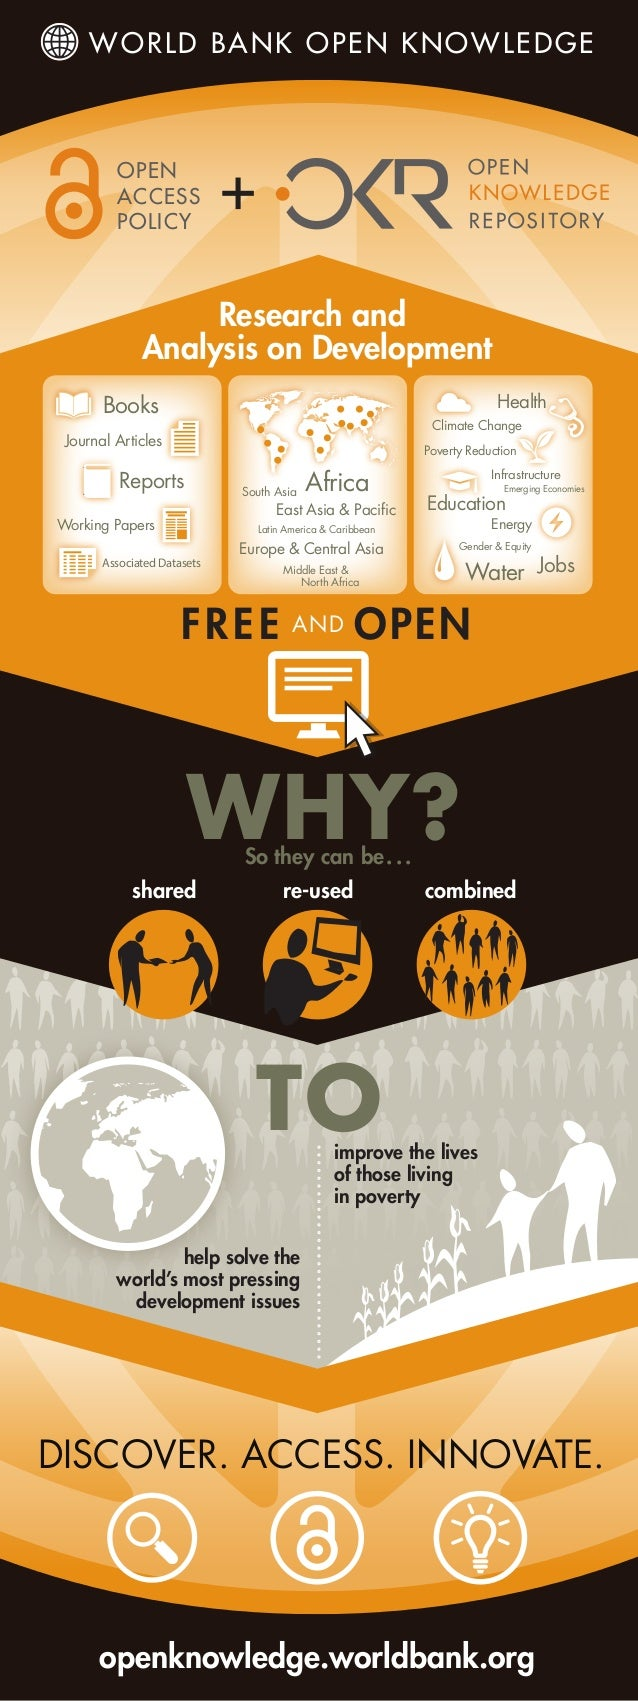 TO shared re-used combined openknowledge.worldbank.org DISCOVER. ACCESS. INNOVATE. help solve the world's most pressing de...